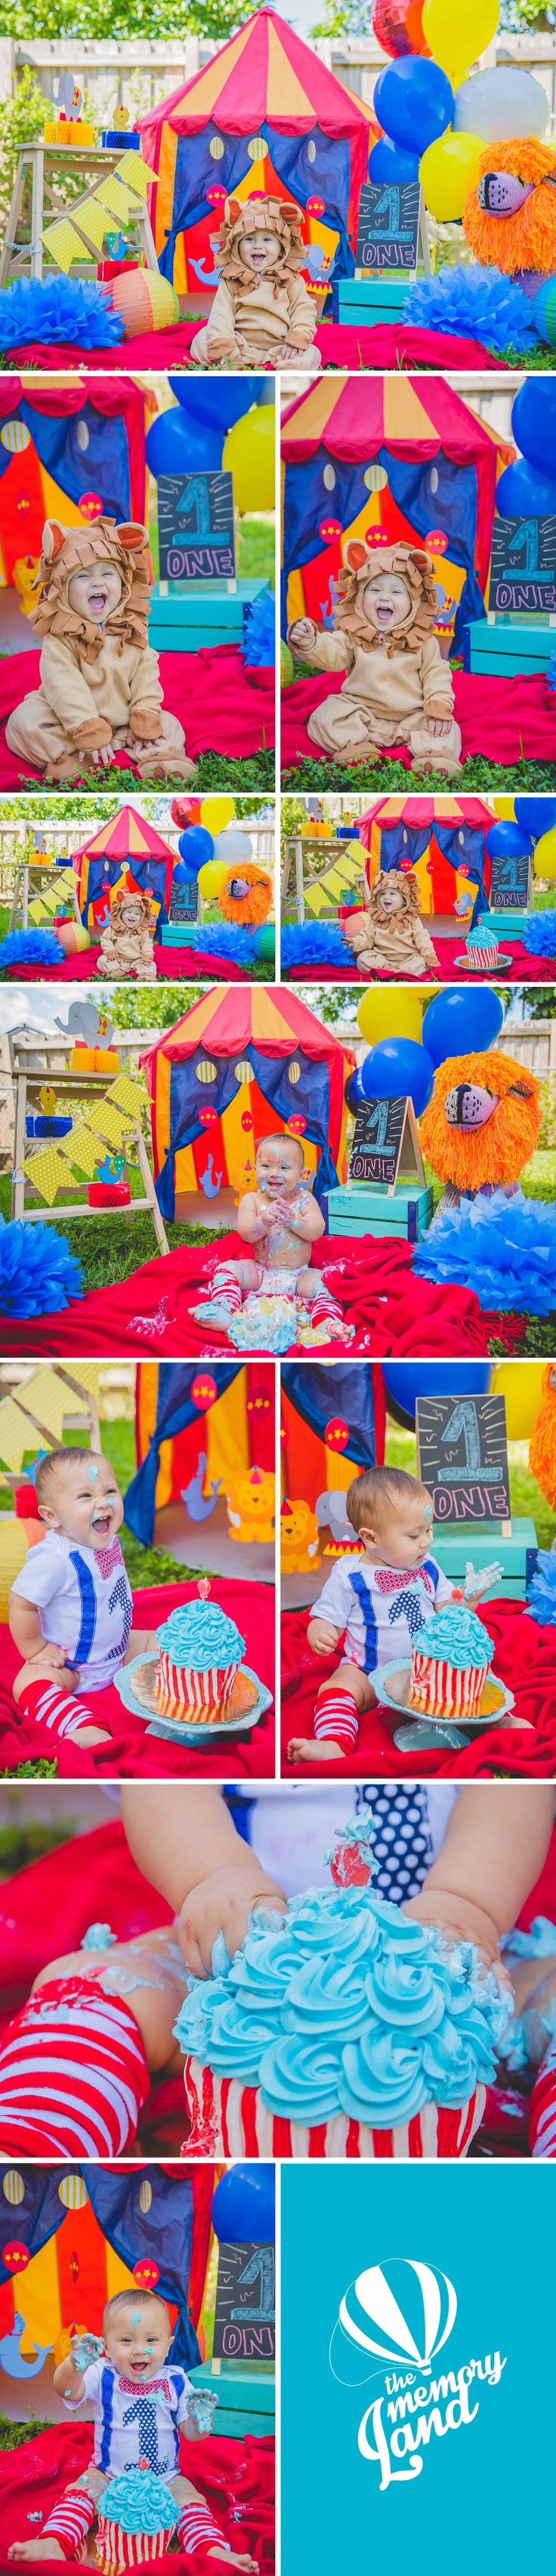 Circus Smash The Cake Photography. Smash The Cake. Circus Cake.Little Boy. Miami Photography. Child Photography. One Year Photography.Circus Decoration.Check out more of our work :) www.thememoryland